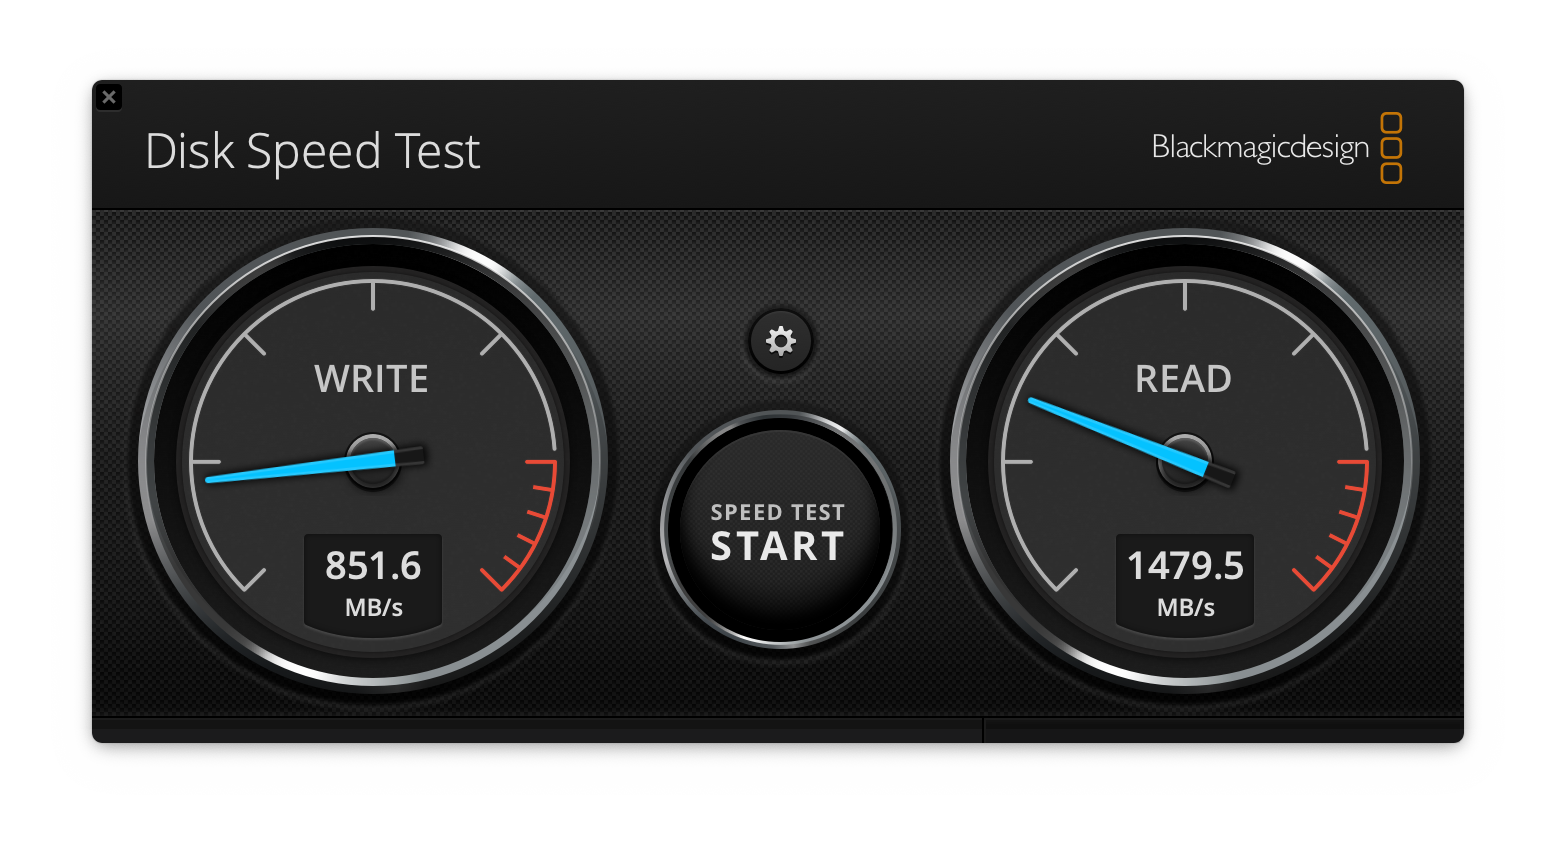 Write: 851.6MB/s, Read: 1479.5MB/s